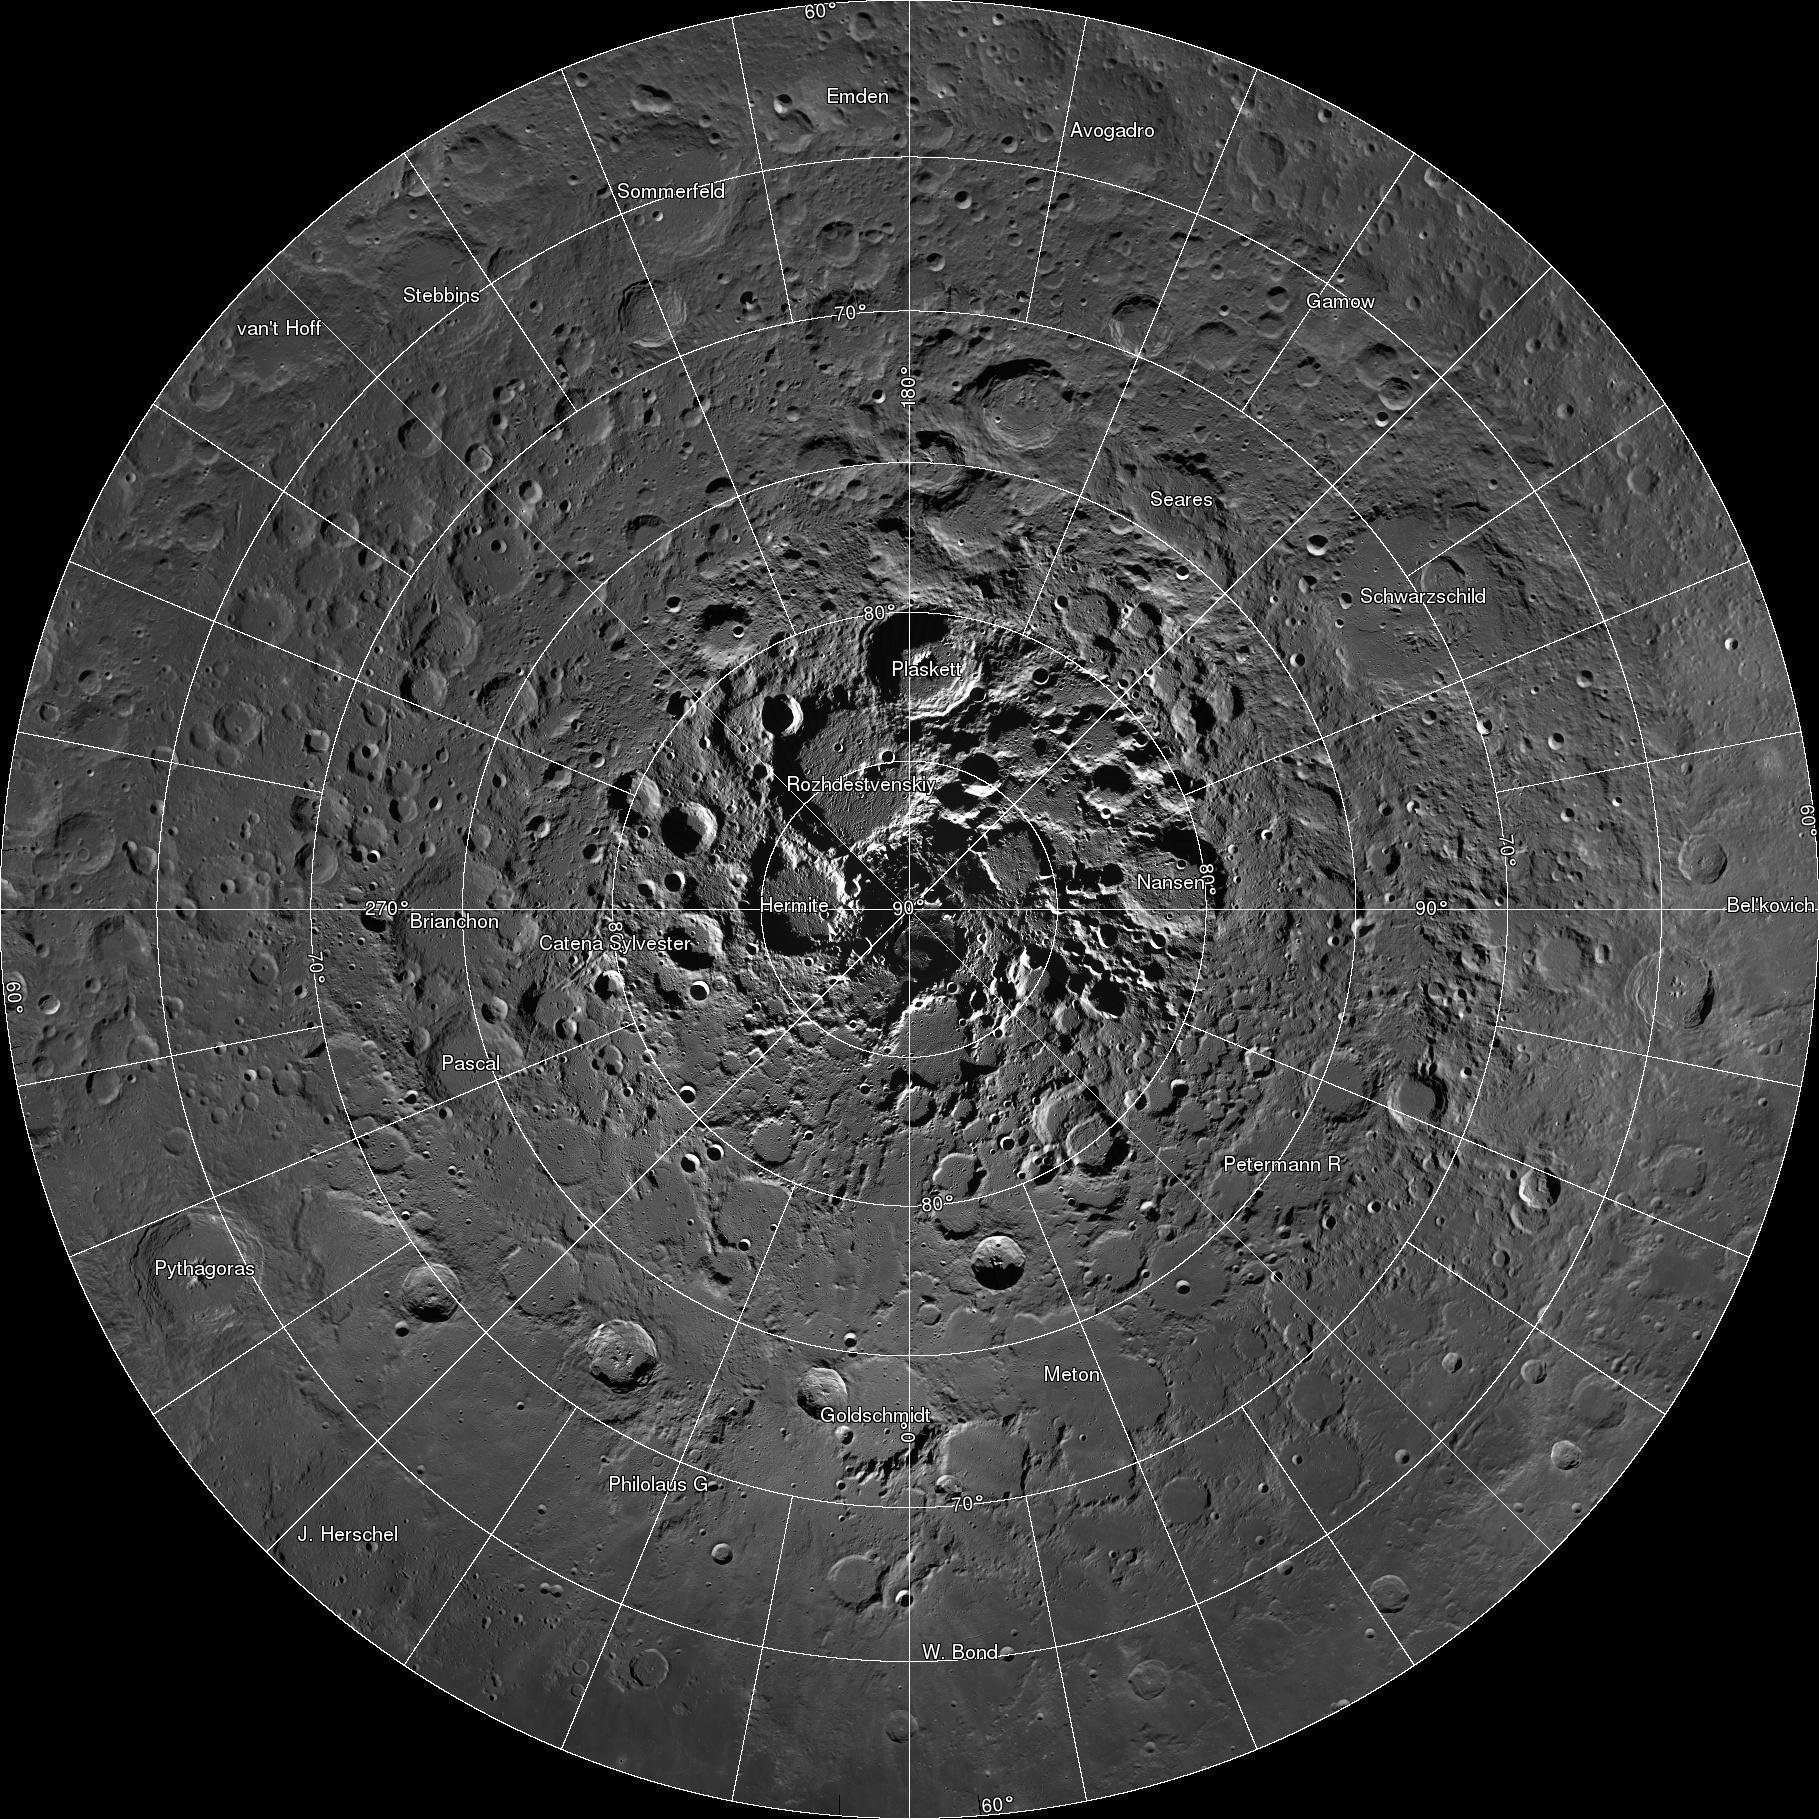 The moon's north pole region. Philolaus Crater is located at around 7 if the image were a clock face, two thirds of the way out from the pole itself.